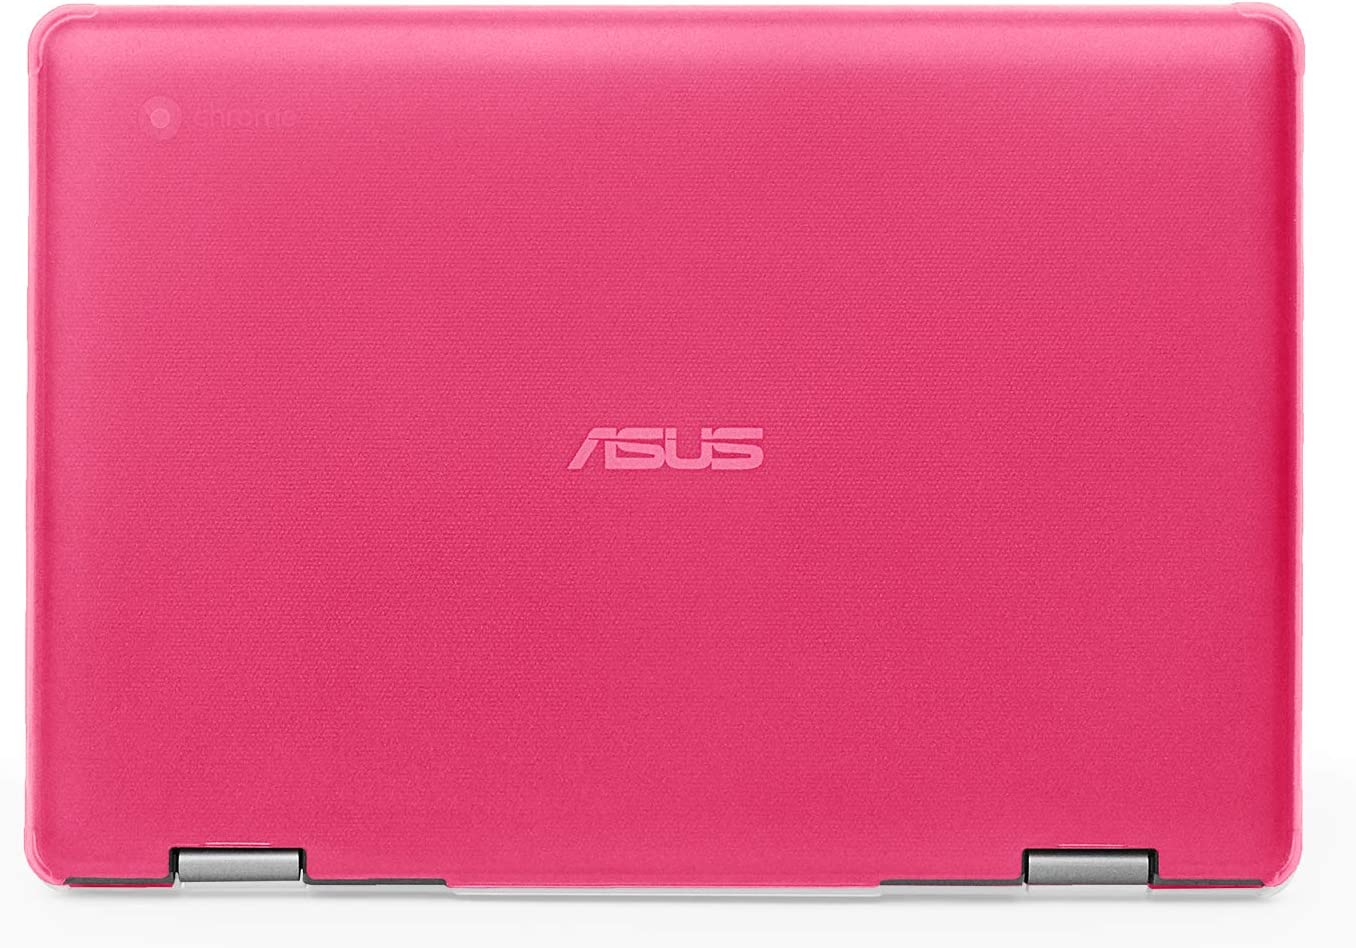 mCover Hard Shell Case for 2019 11.6-inch ASUS Chromebook Flip C214MA Series (NOT Compatible with Other ASUS Chromebook Model) Laptop – ASUS C214 Pink